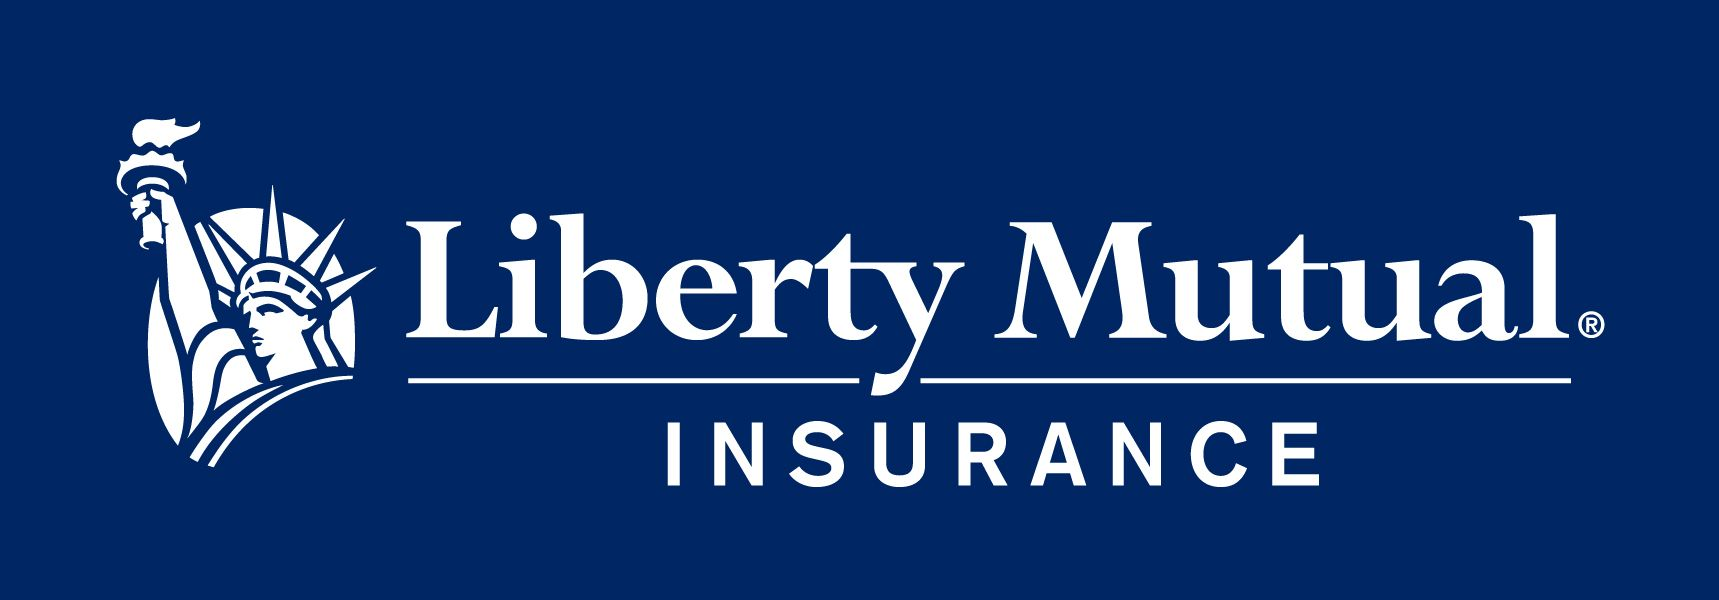 Liberty Mutual Car Insurance Quote Gorgeous Image Result For Liberty Mutual Insurance  Branding  Pinterest